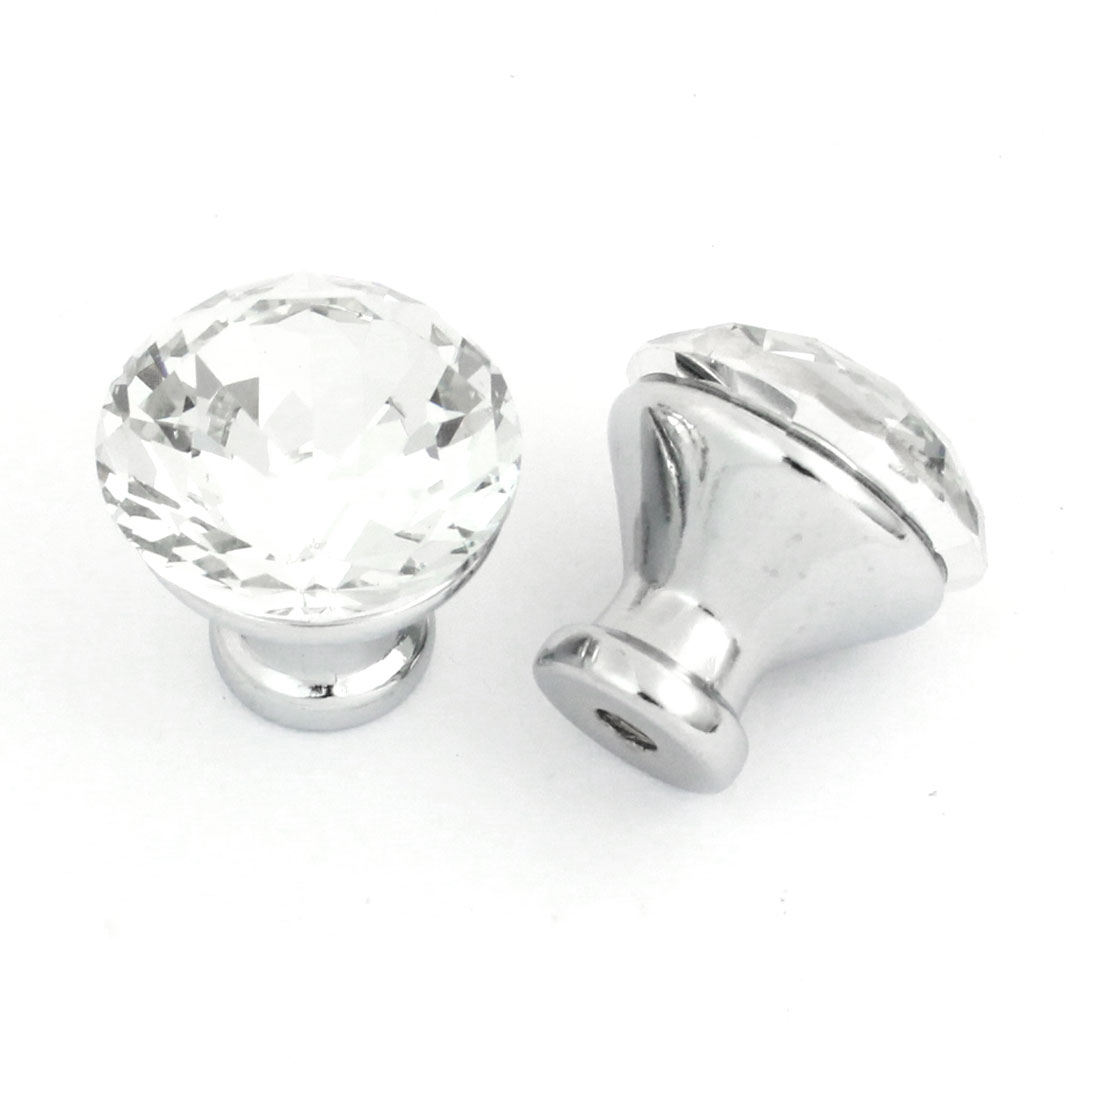 2pcs 30mm Clear Bling Plastic Crystal Cabinet Cupboard Dresser Drawer Door Round Shaped Pull Knob Handle